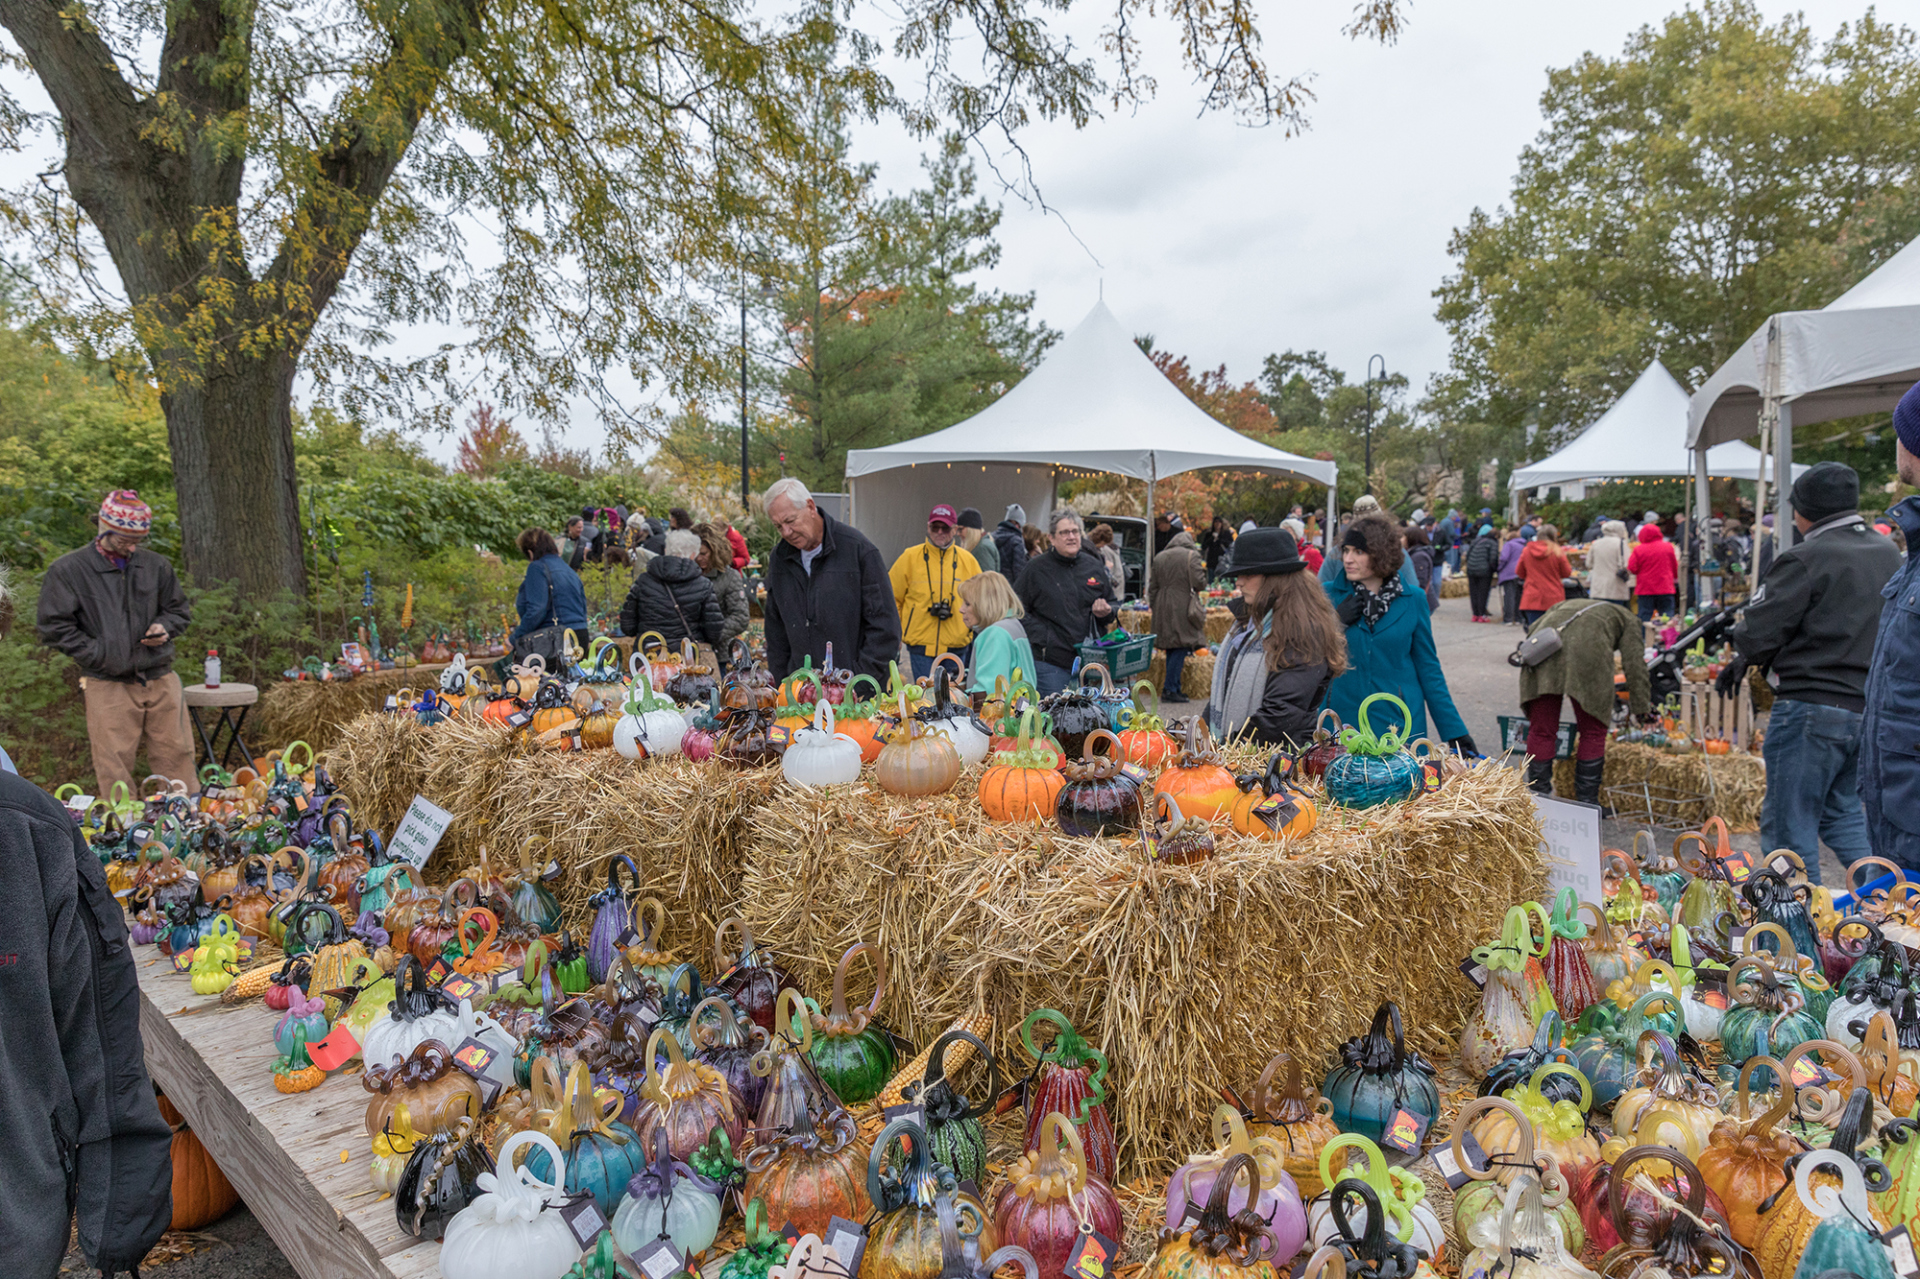 Visitors look at all the glass pumpkins on display